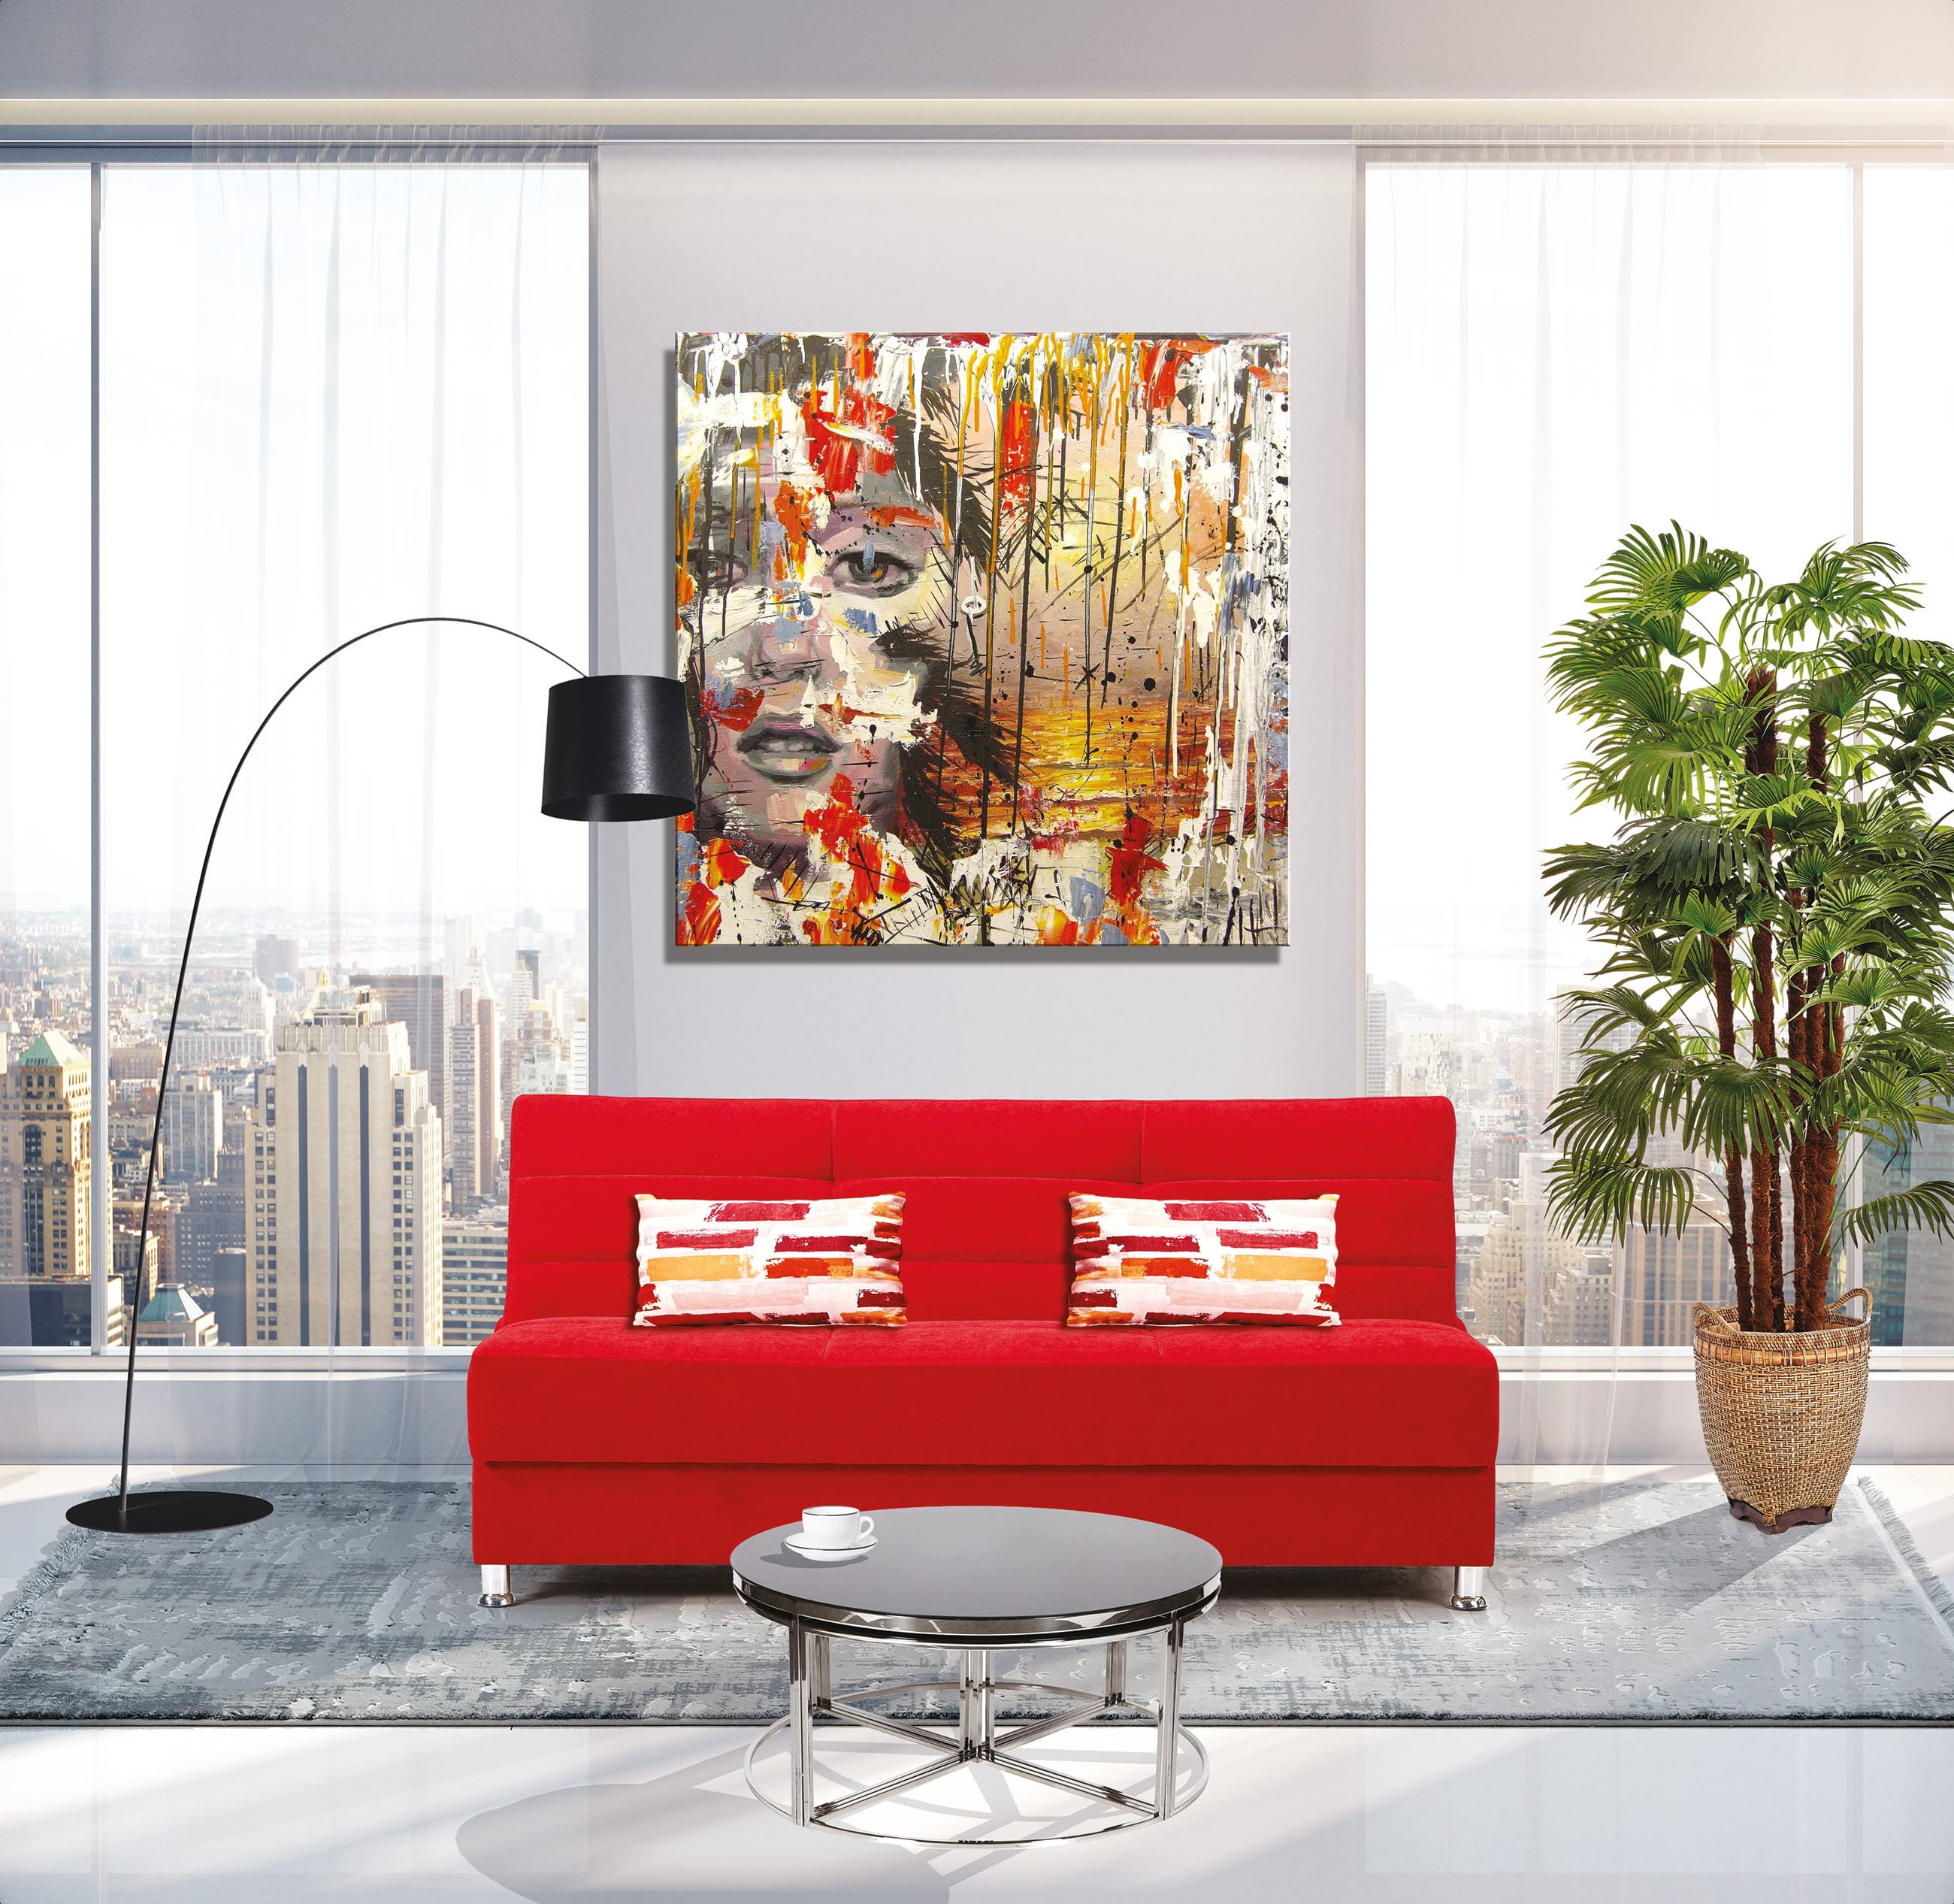 Rainbow Prusa Red Convertible Sofa by Casamode